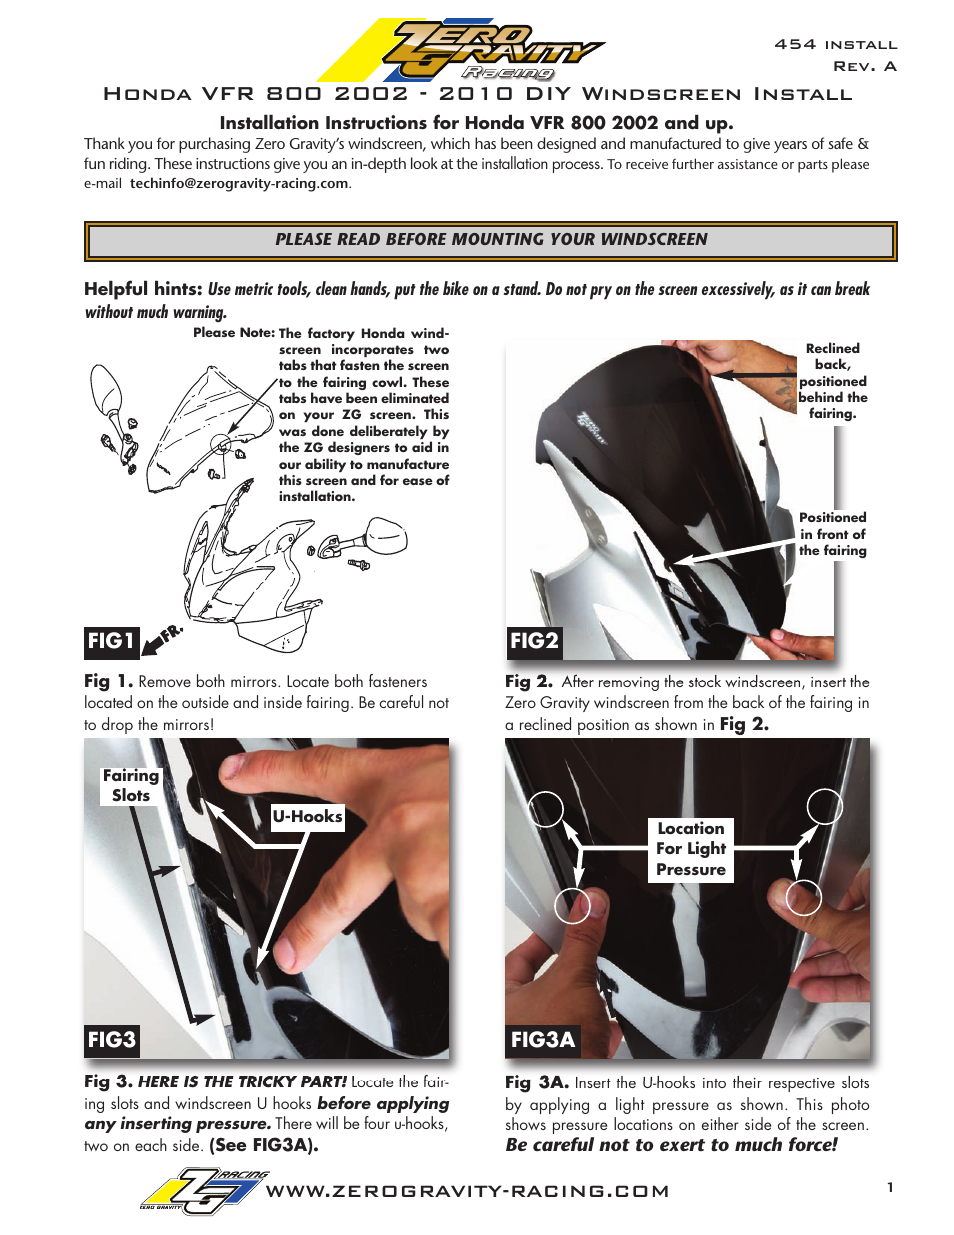 Zero Gravity Honda VFR 800 (2002 and up) Windscreen User Manual | 2